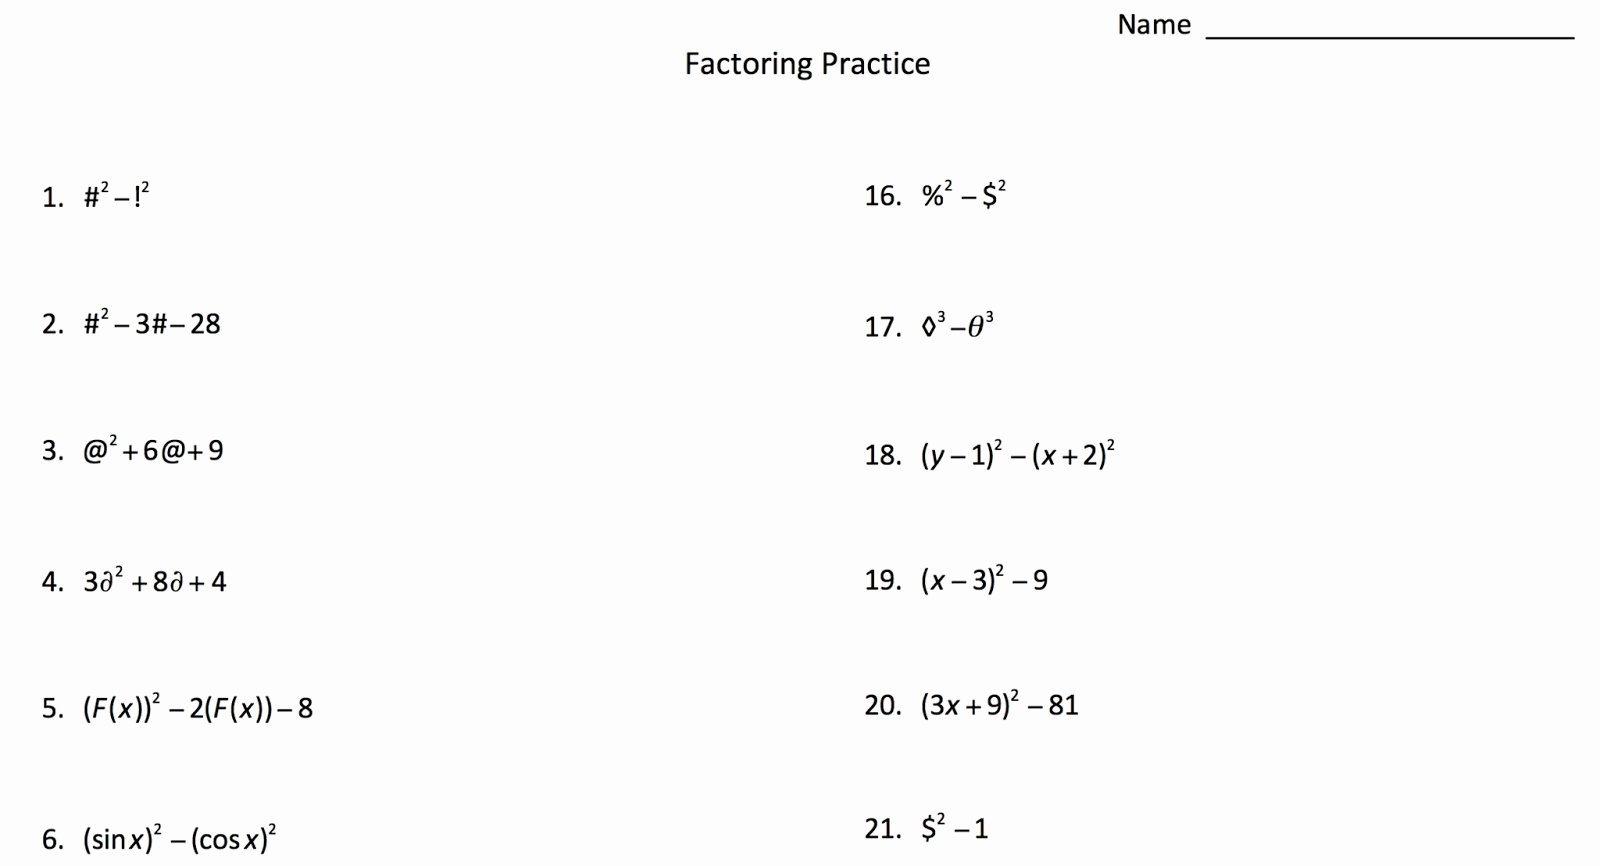 Factoring Worksheet Algebra 2 Fresh Factoring with Symbols